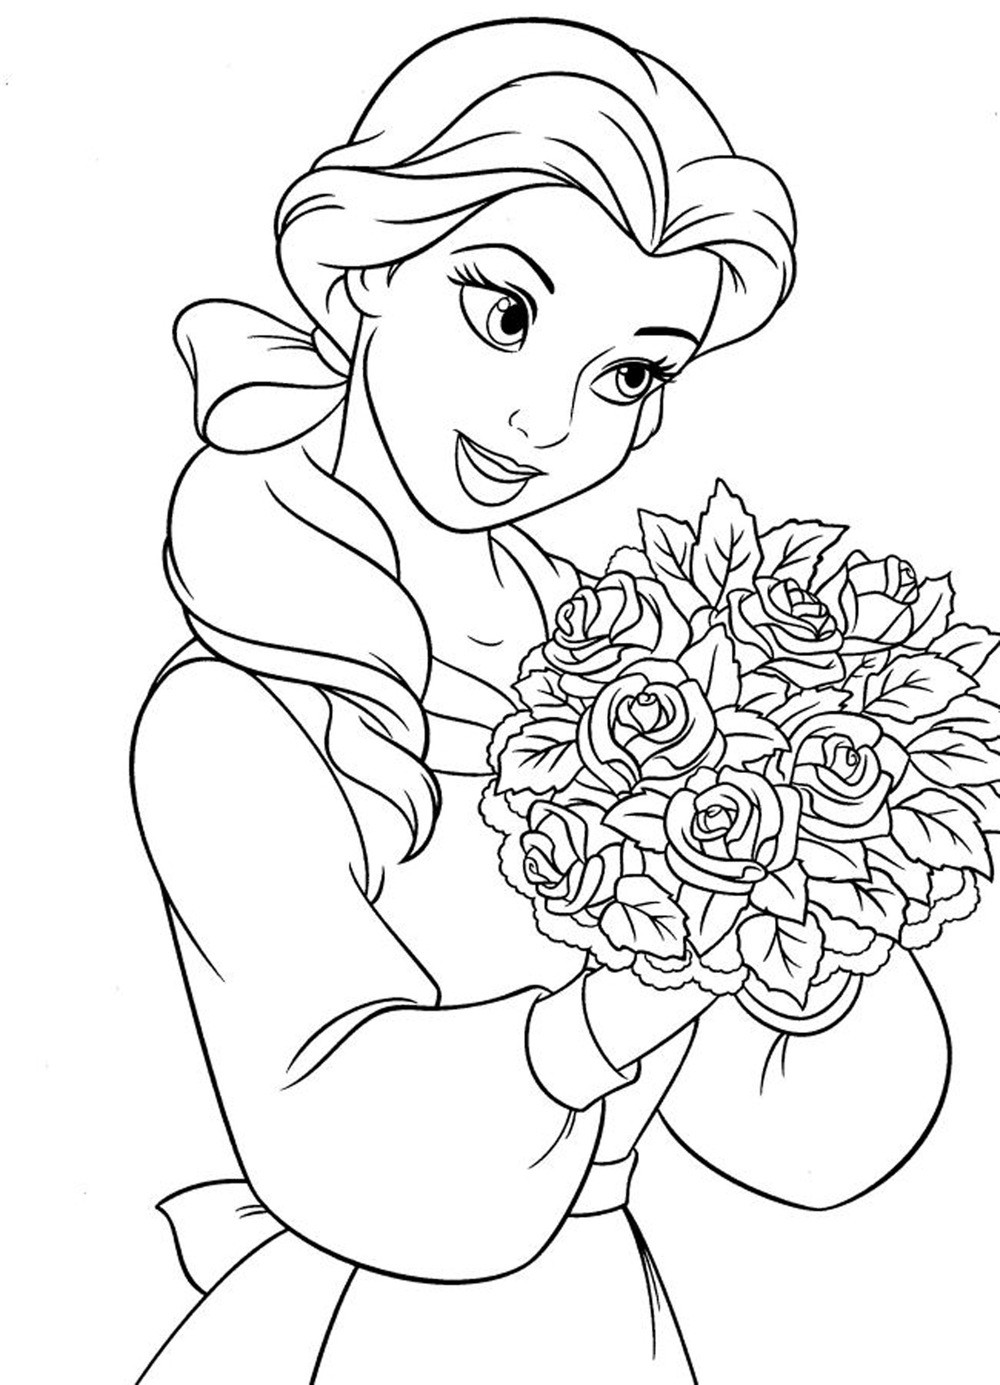 Best ideas about Coloring Pages For Girls Princess High . Save or Pin princess coloring pages for girls Free Now.